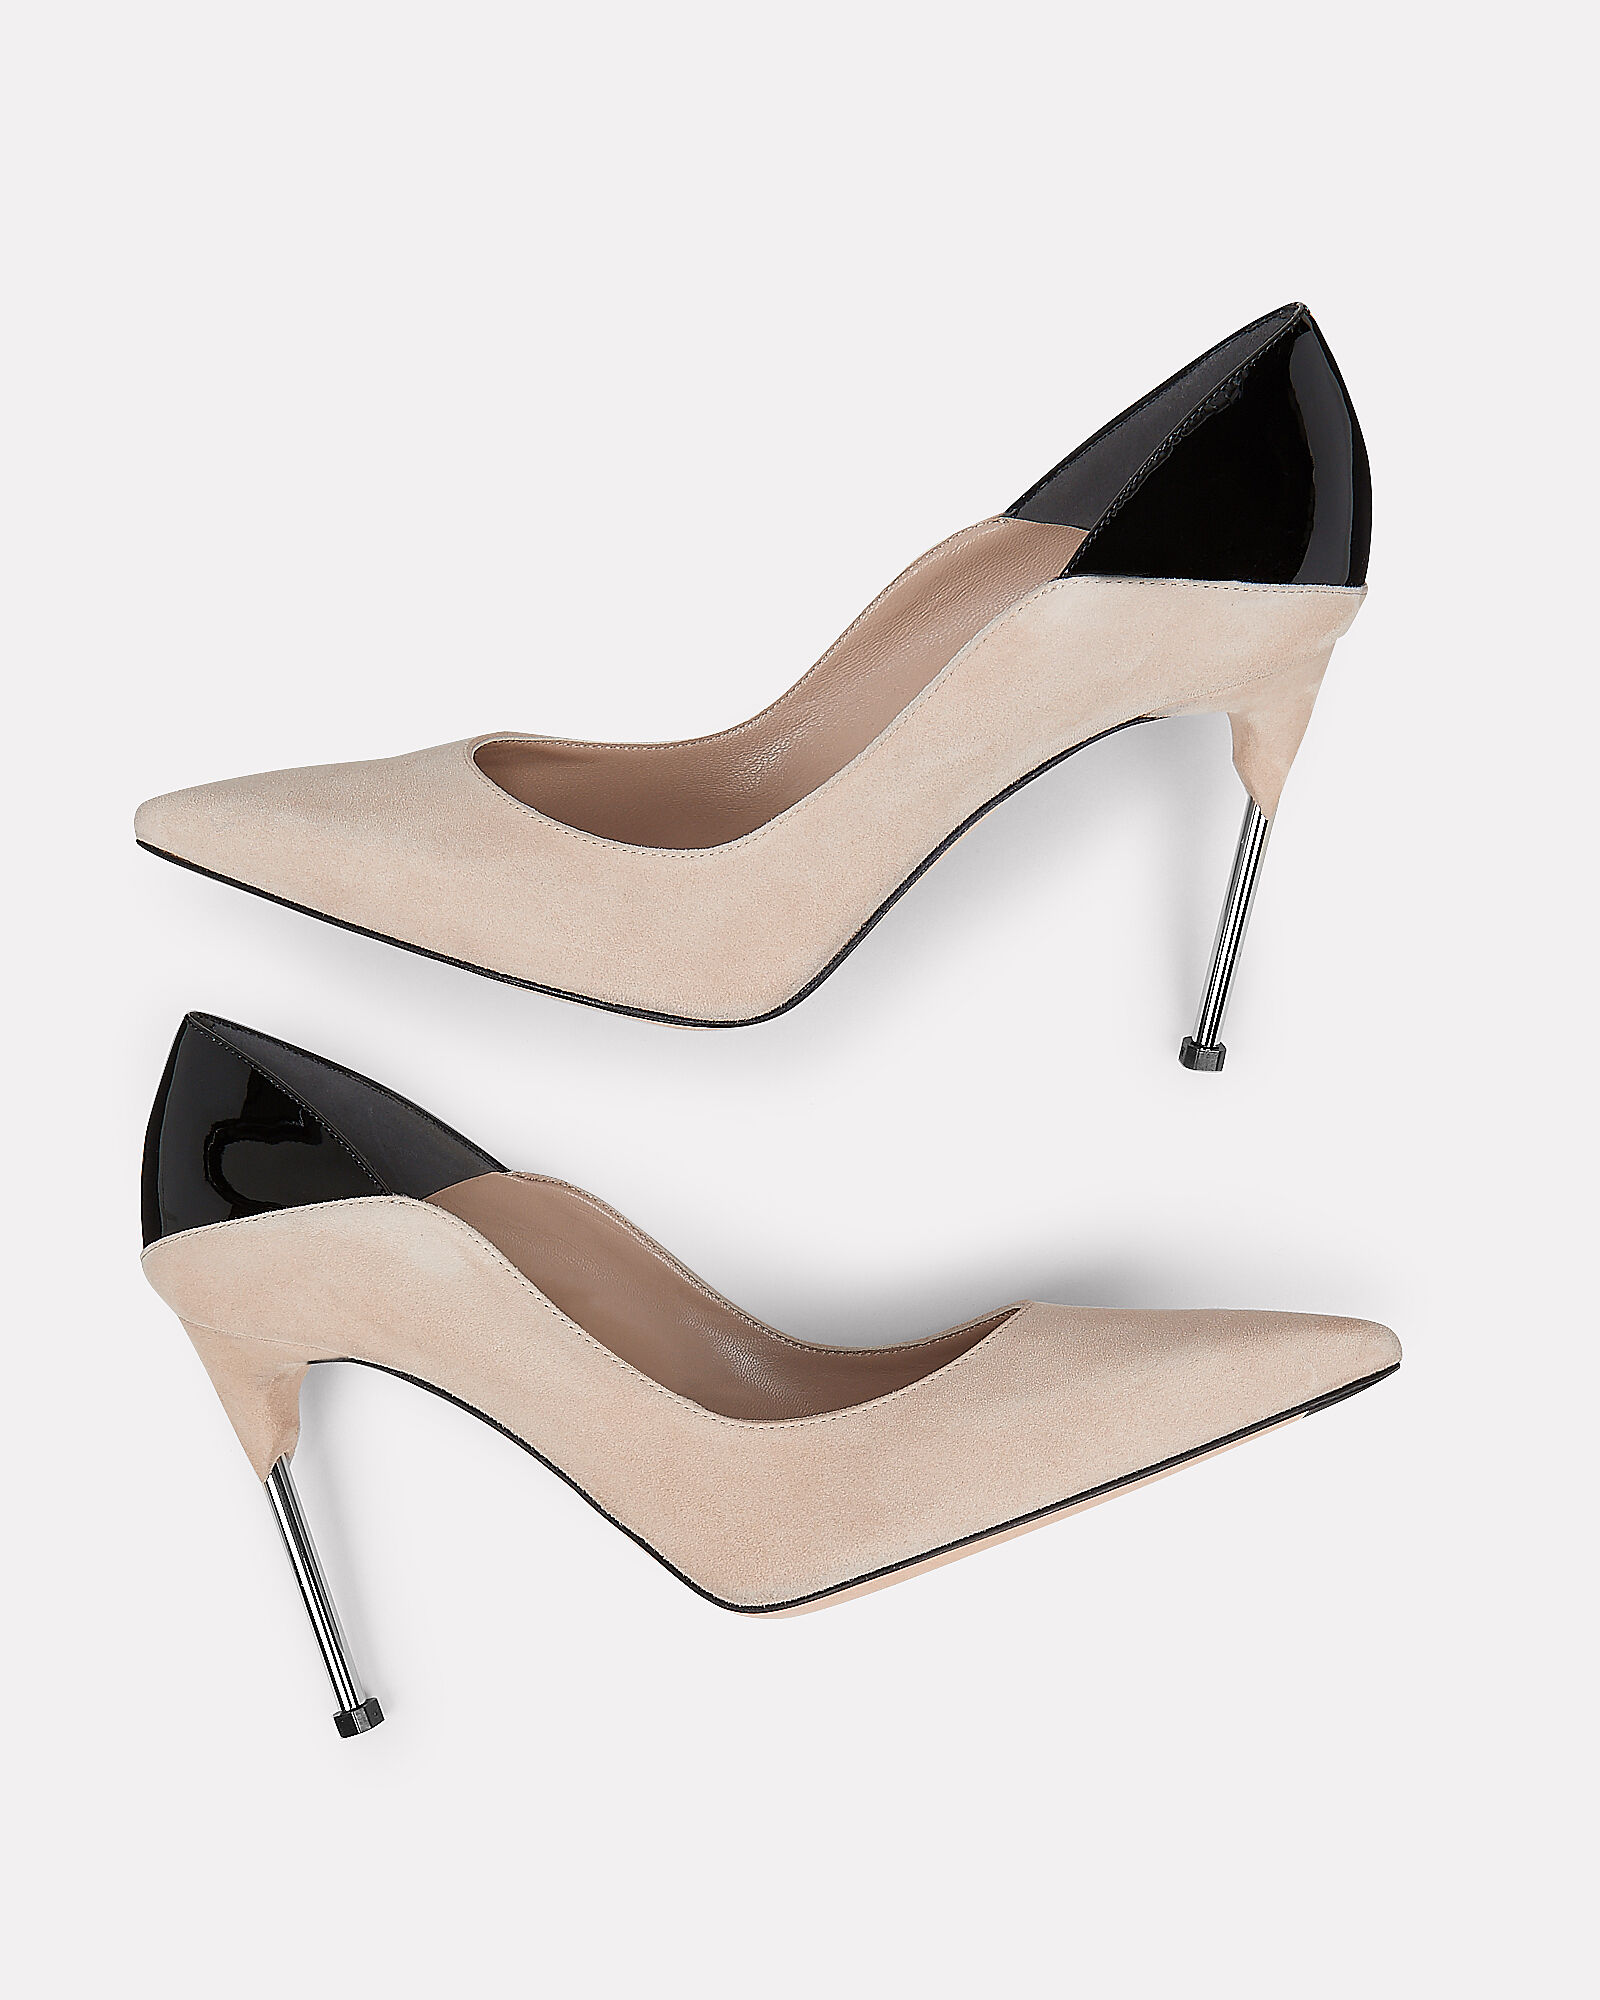 Two-Tone Pumps, BEIGE, hi-res